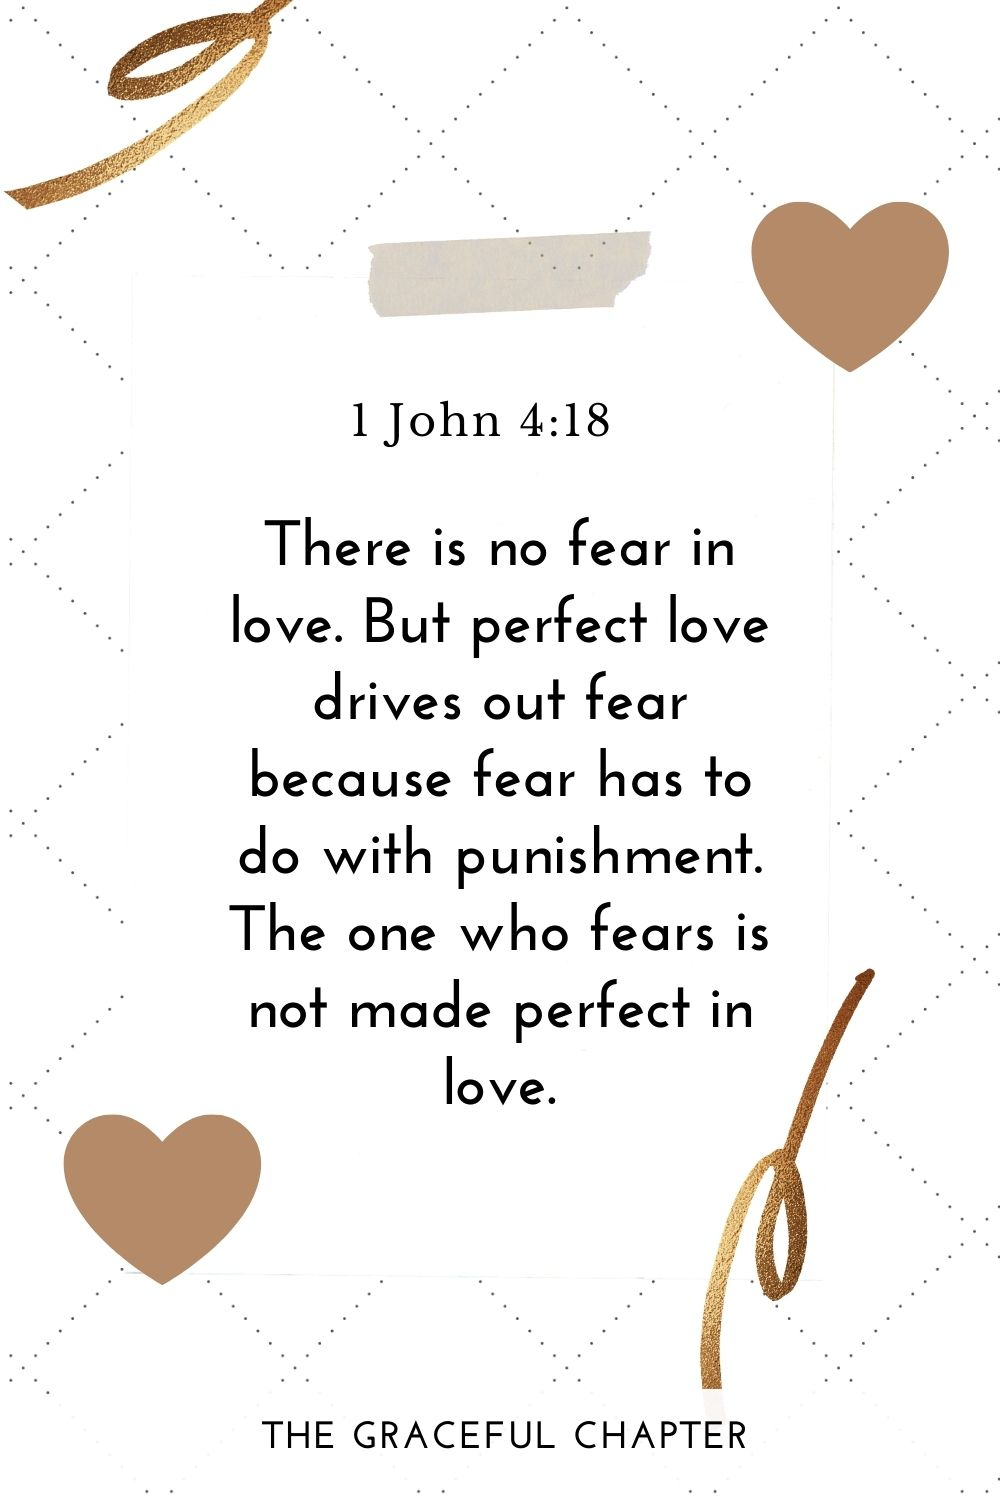 There is no fear in love. But perfect love drives out fear because fear has to do with punishment. The one who fears is not made perfect in love. 1 John 4:18